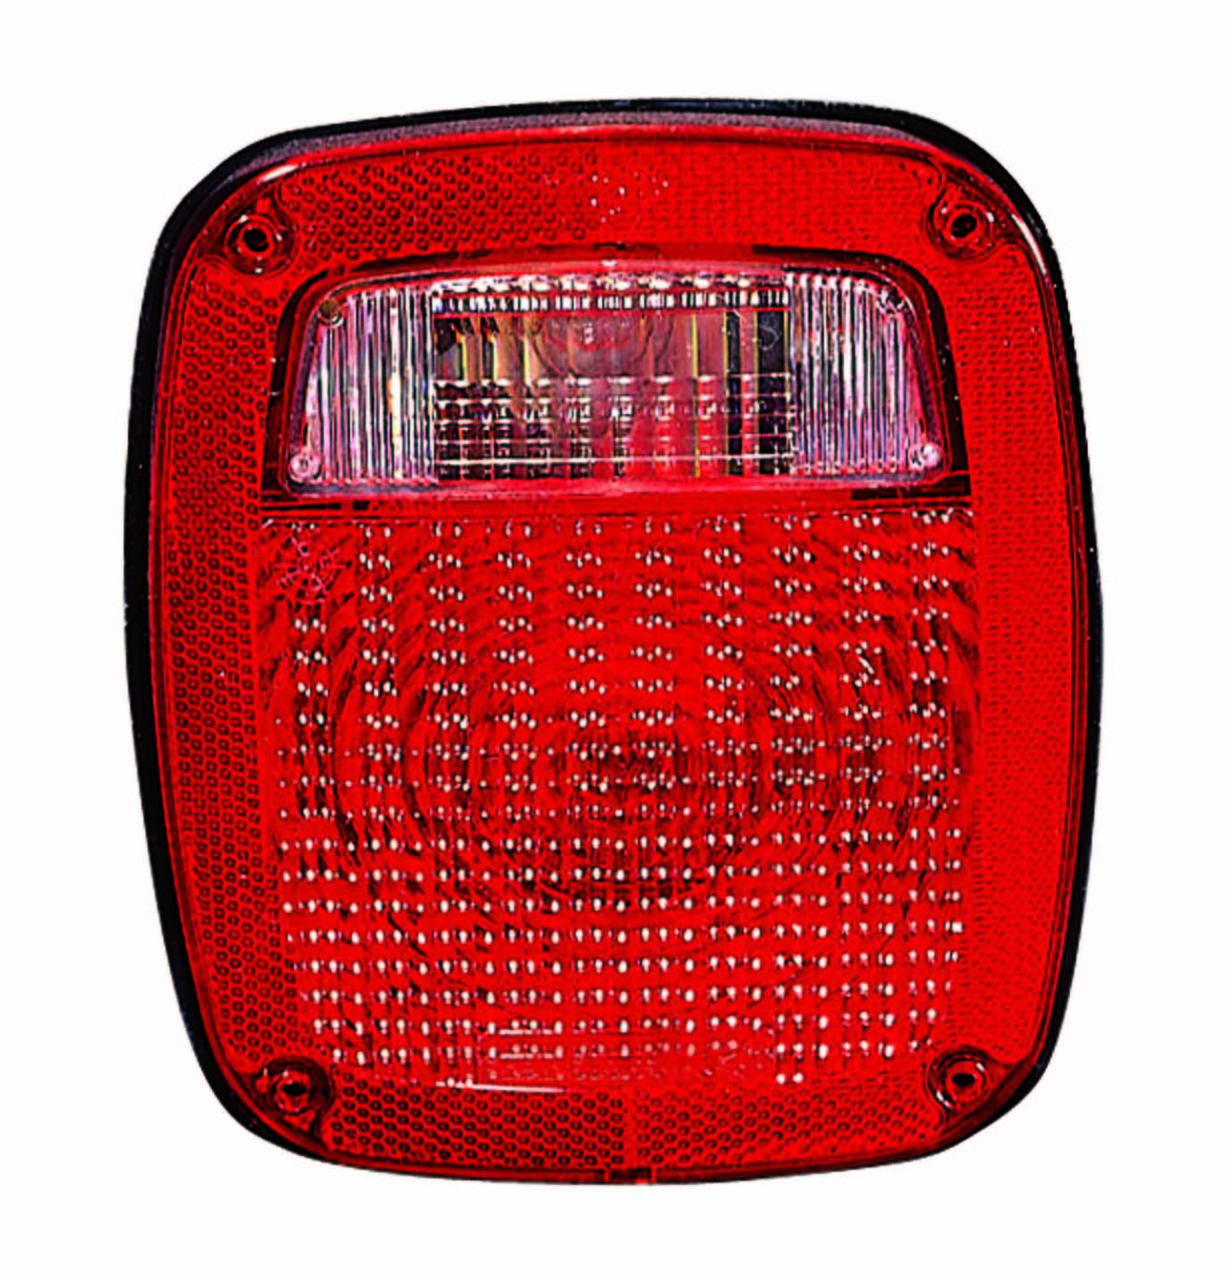 Jeep Wrangler 2000 2001 2002 2003 2004 2005 2006 left driver tail light